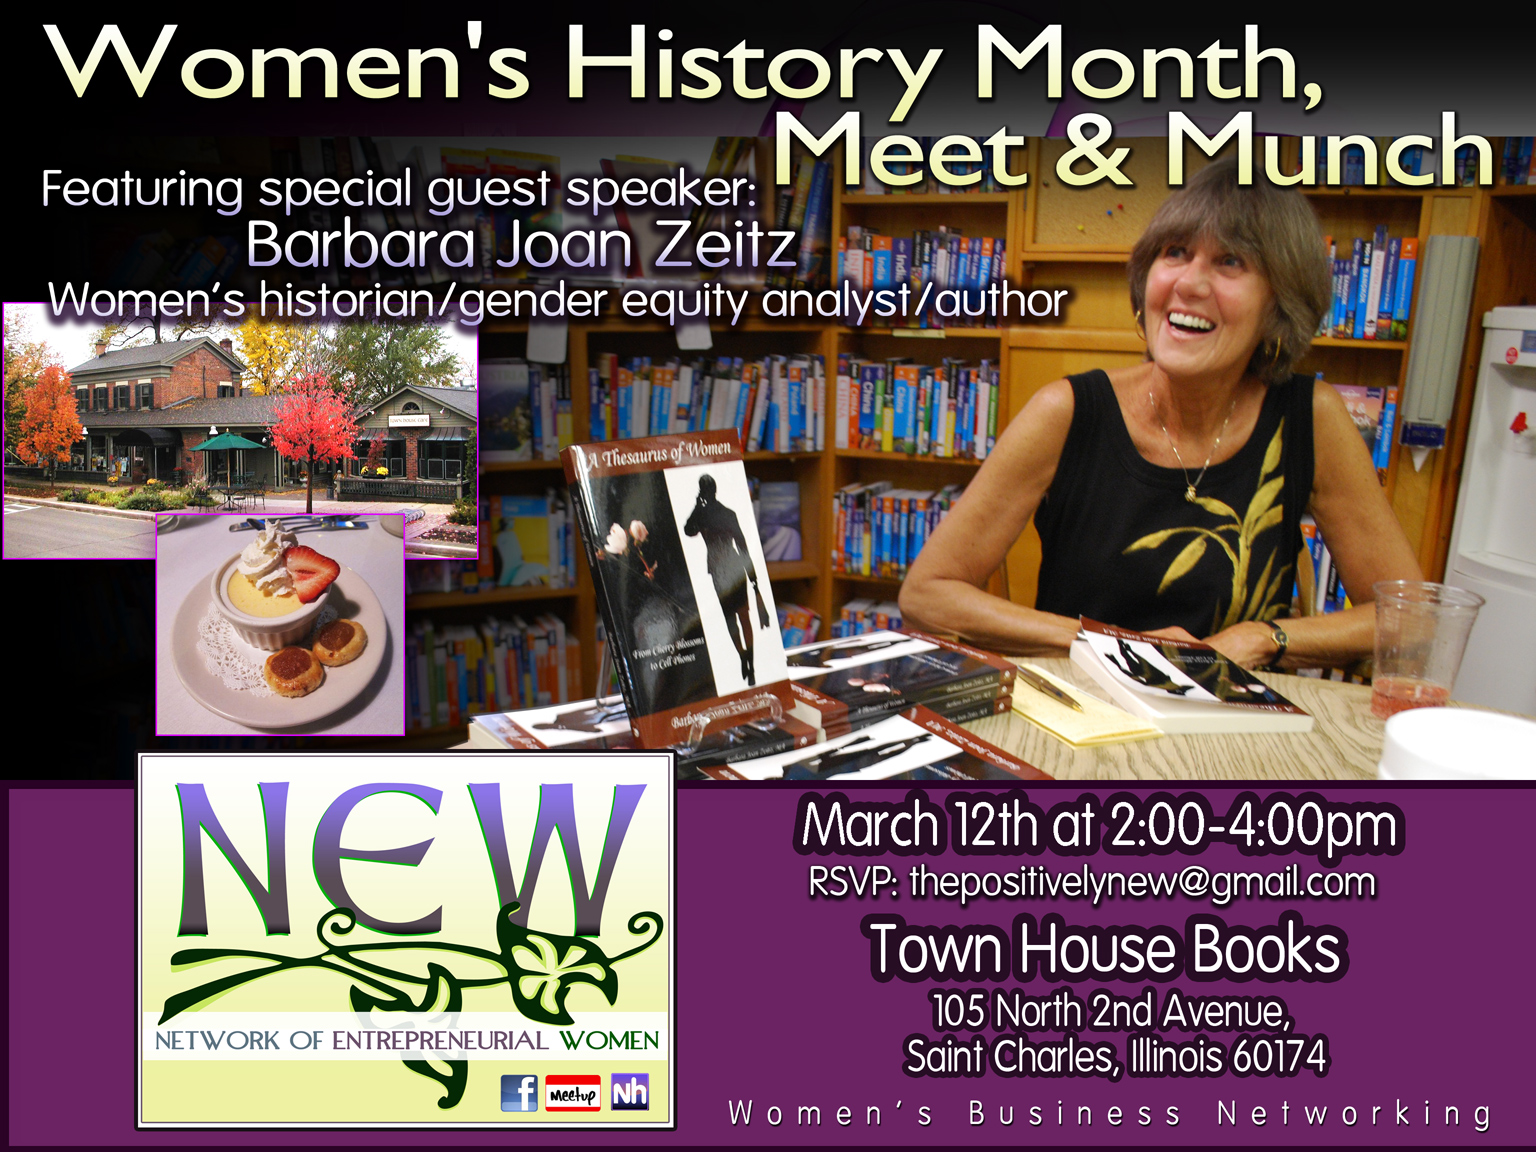 town_house_books_march_2014a